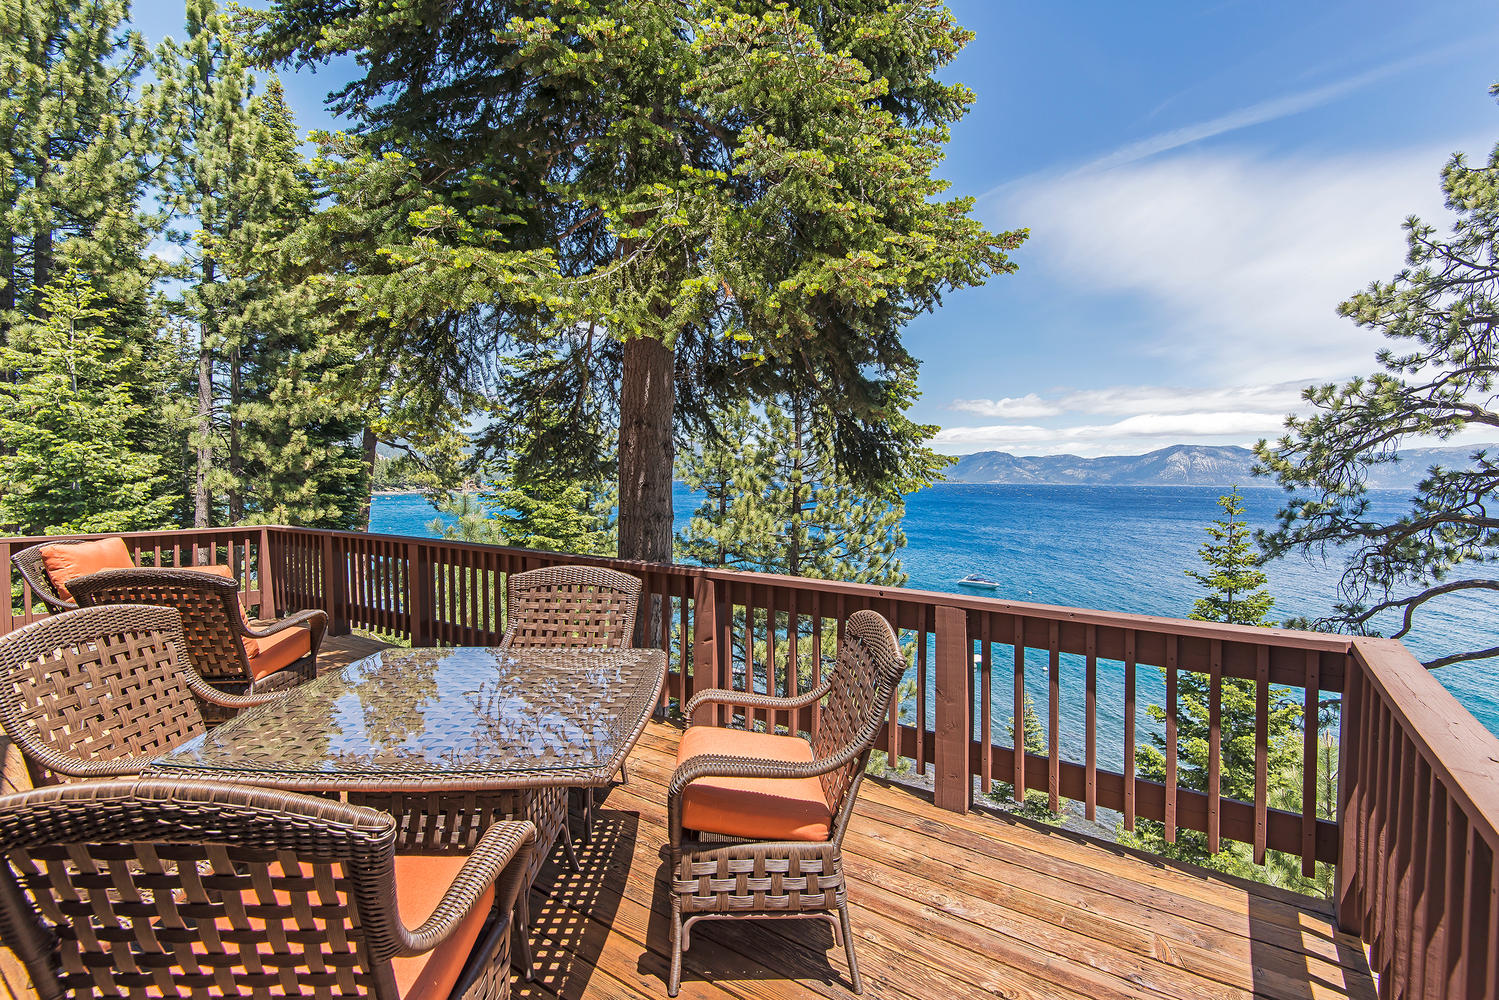 Lake tahoe rental glimmering shores lakefront for Cabin rental tahoe